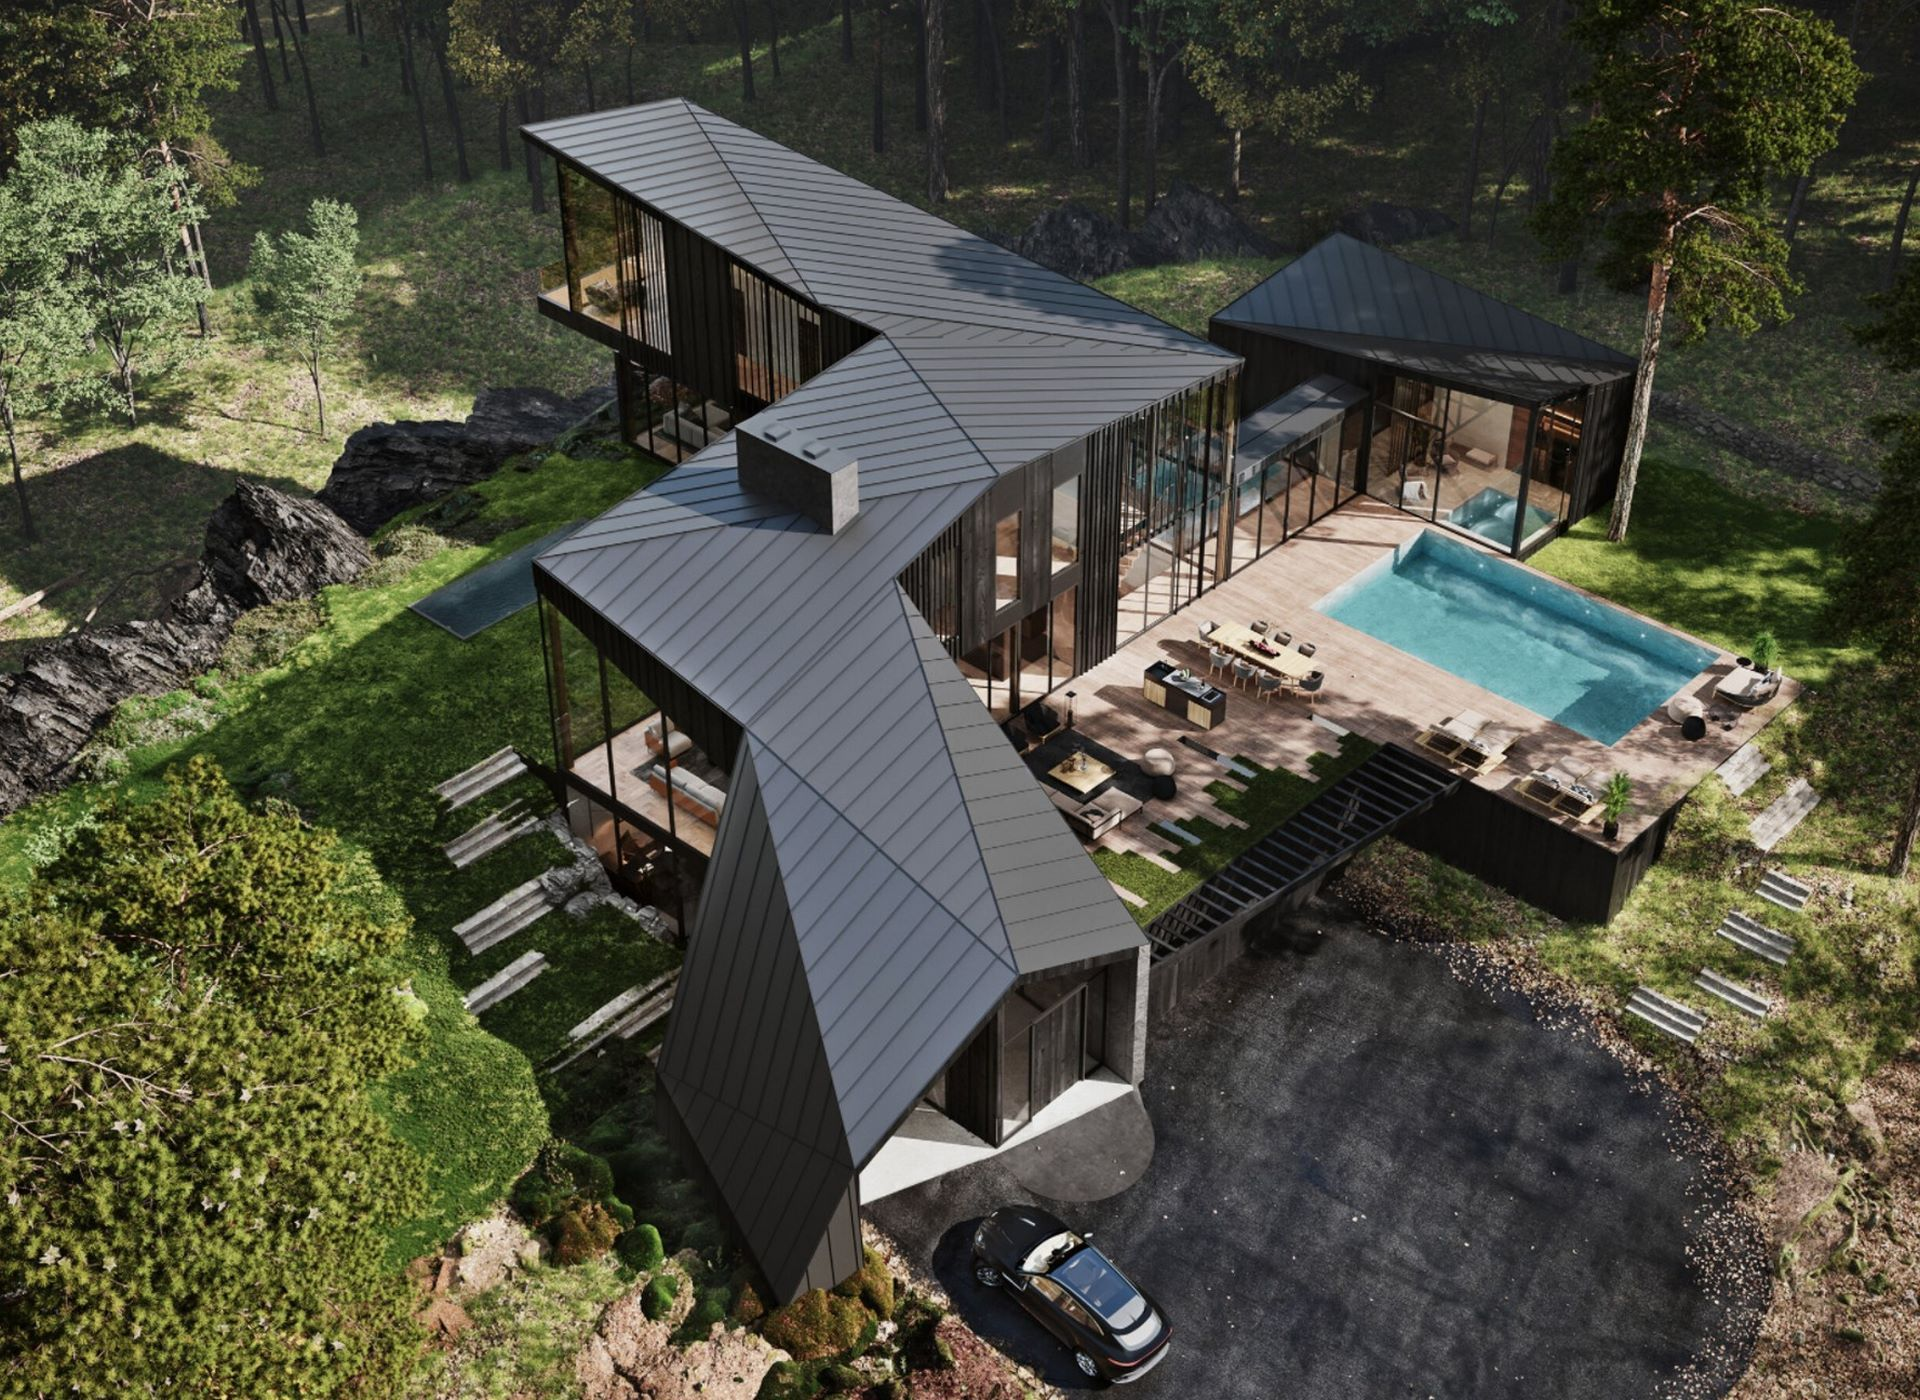 Sylvan-Rock-by-S3-Architecture-and-Aston-Martin-Design-2